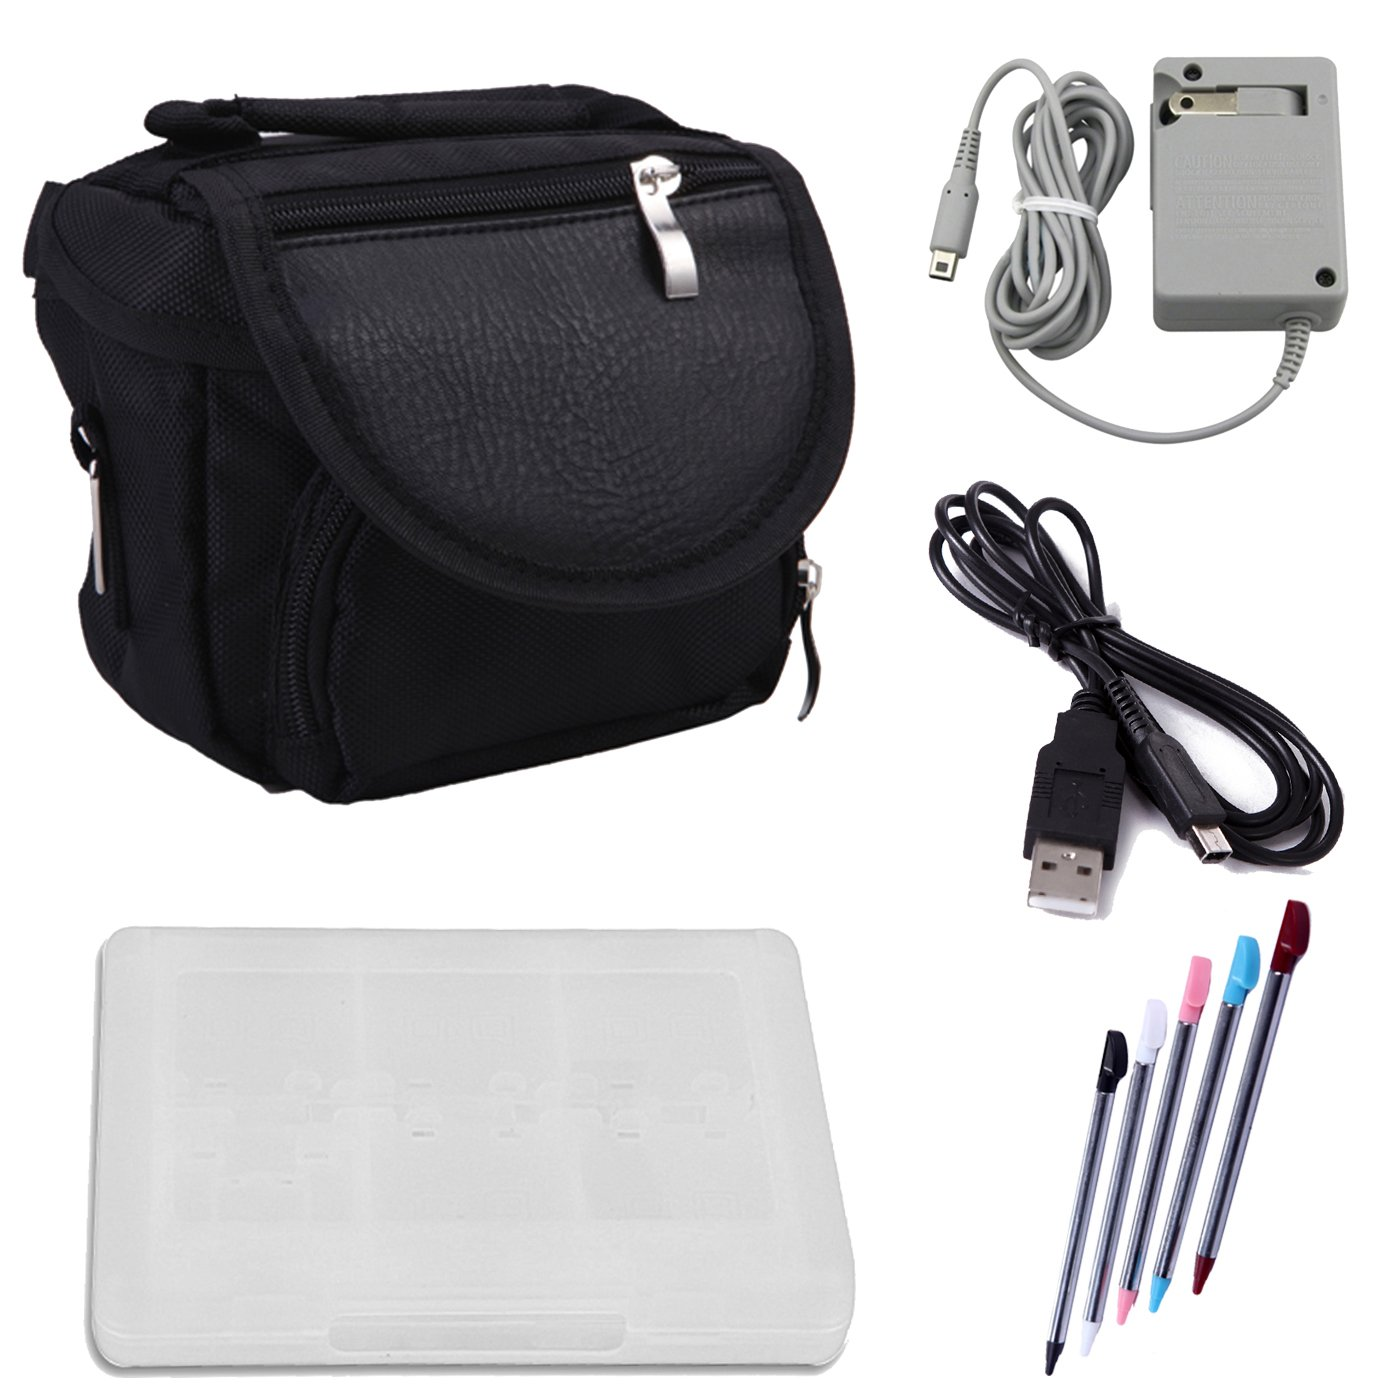 Buying Online Hde Nintendo 3ds Travel Bag Carrying Case Game Card Nds Lite Charger Adaptor Black Holder 5 Pack Retractable